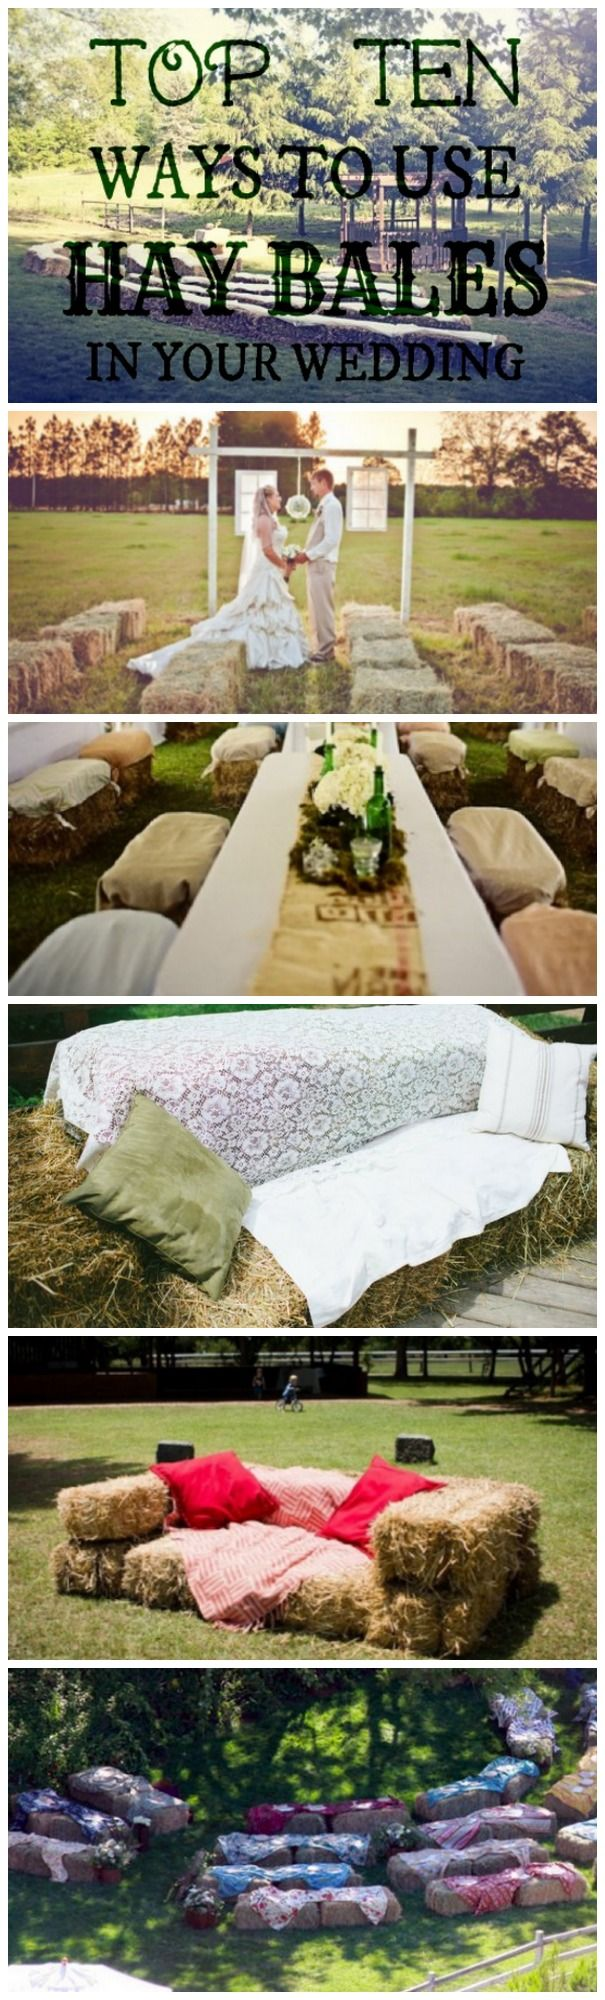 Ways to use hay bales at your wedding